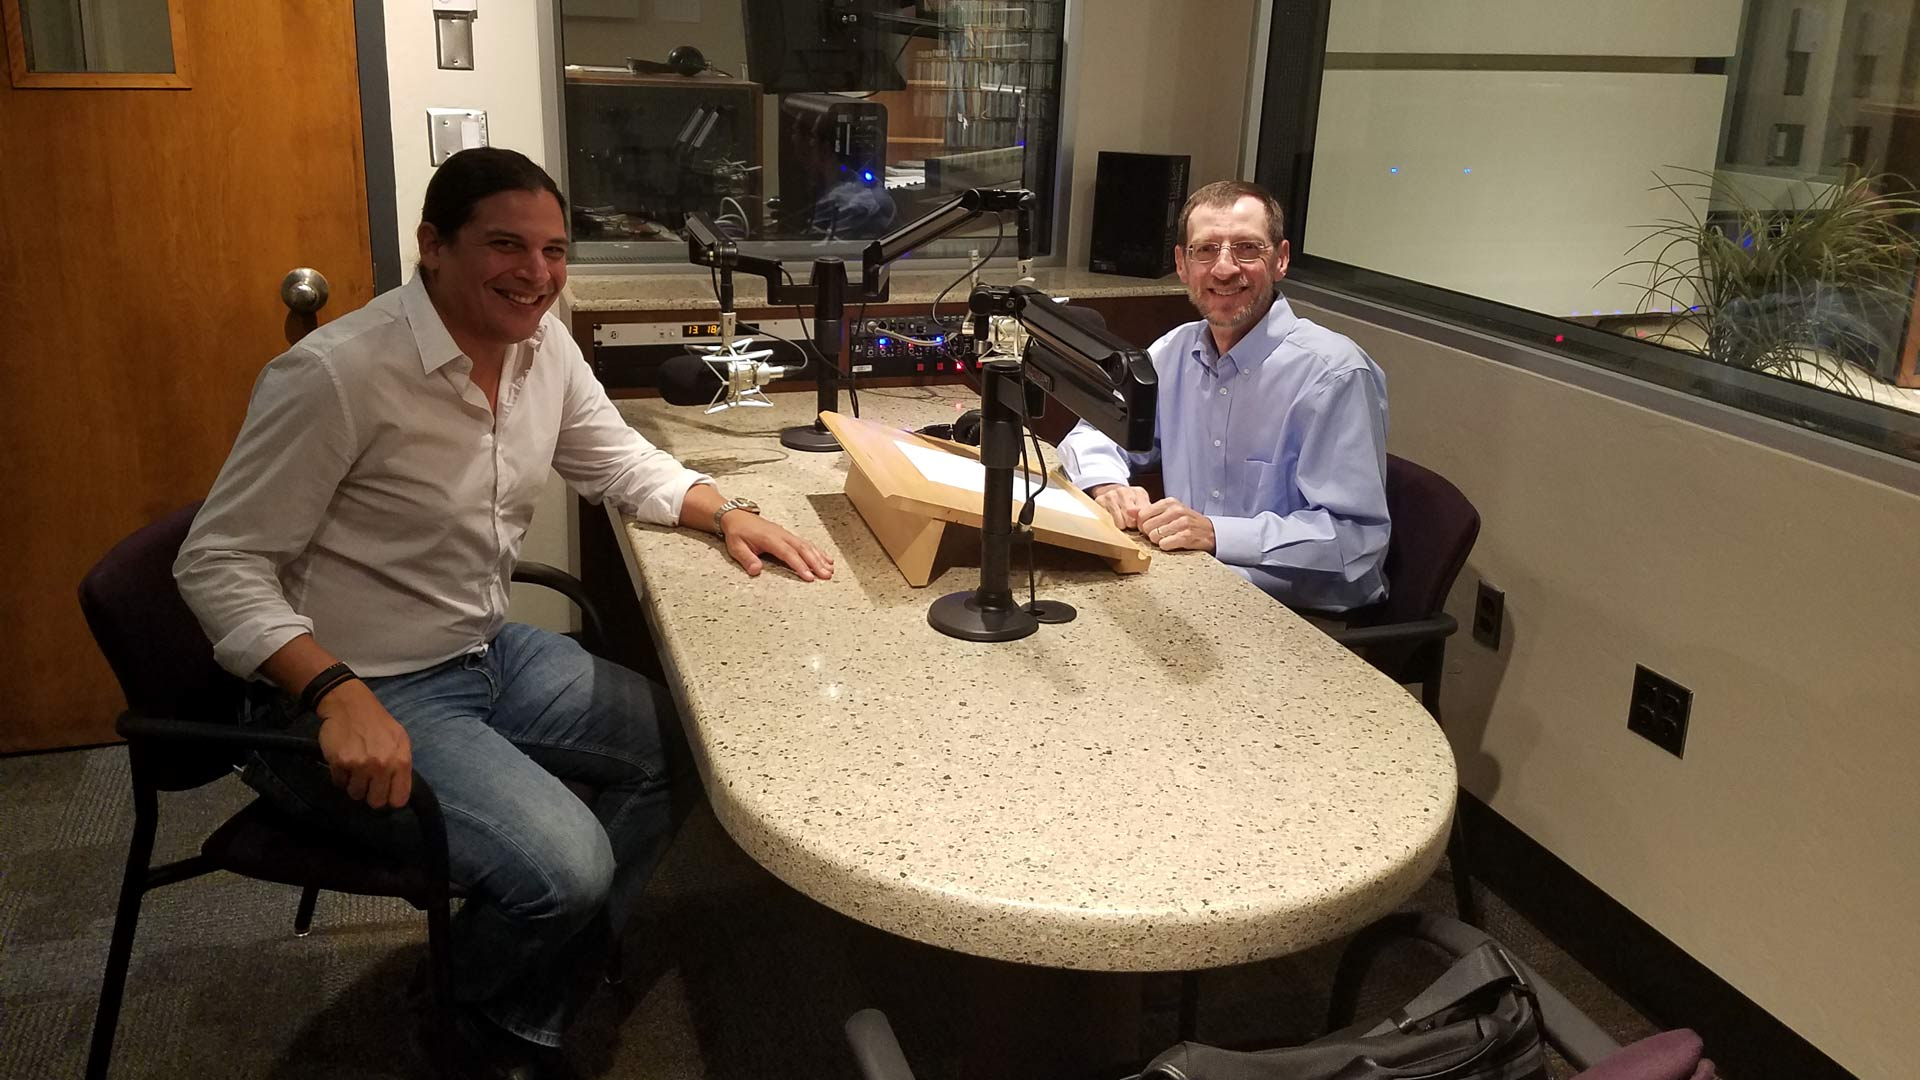 AZPM's Andy Bade (right) in the AZPM studio with Jose Luis Gomez (left) from the Tucson Symphony Orchestra.